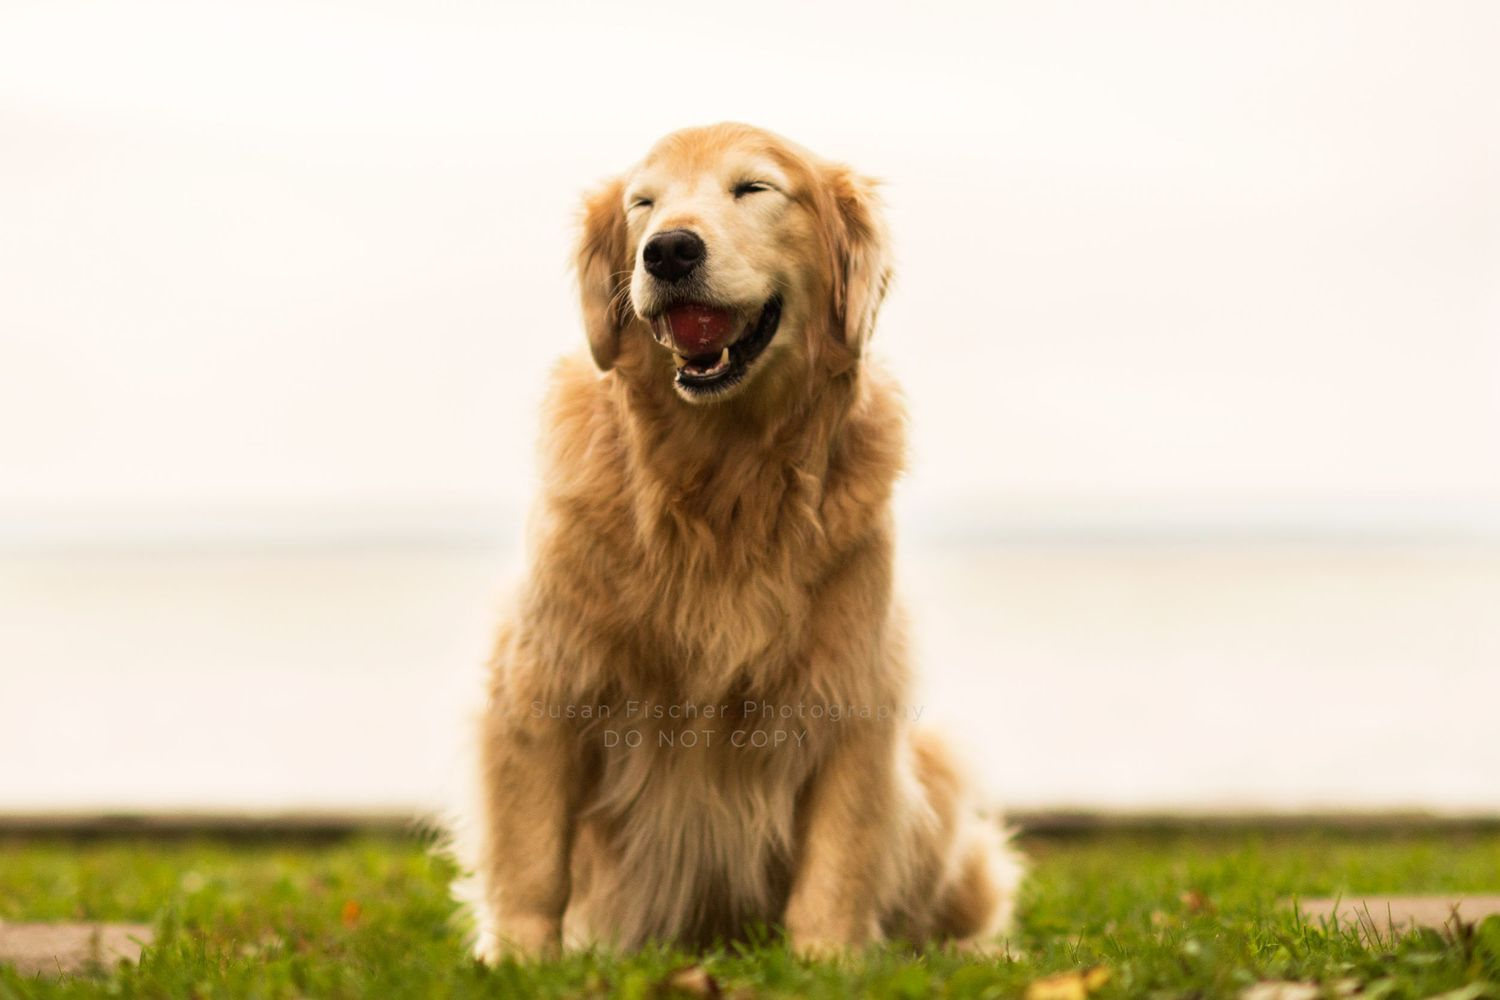 dog, dog with ball, golden retriever, smiling dog, eyes closed